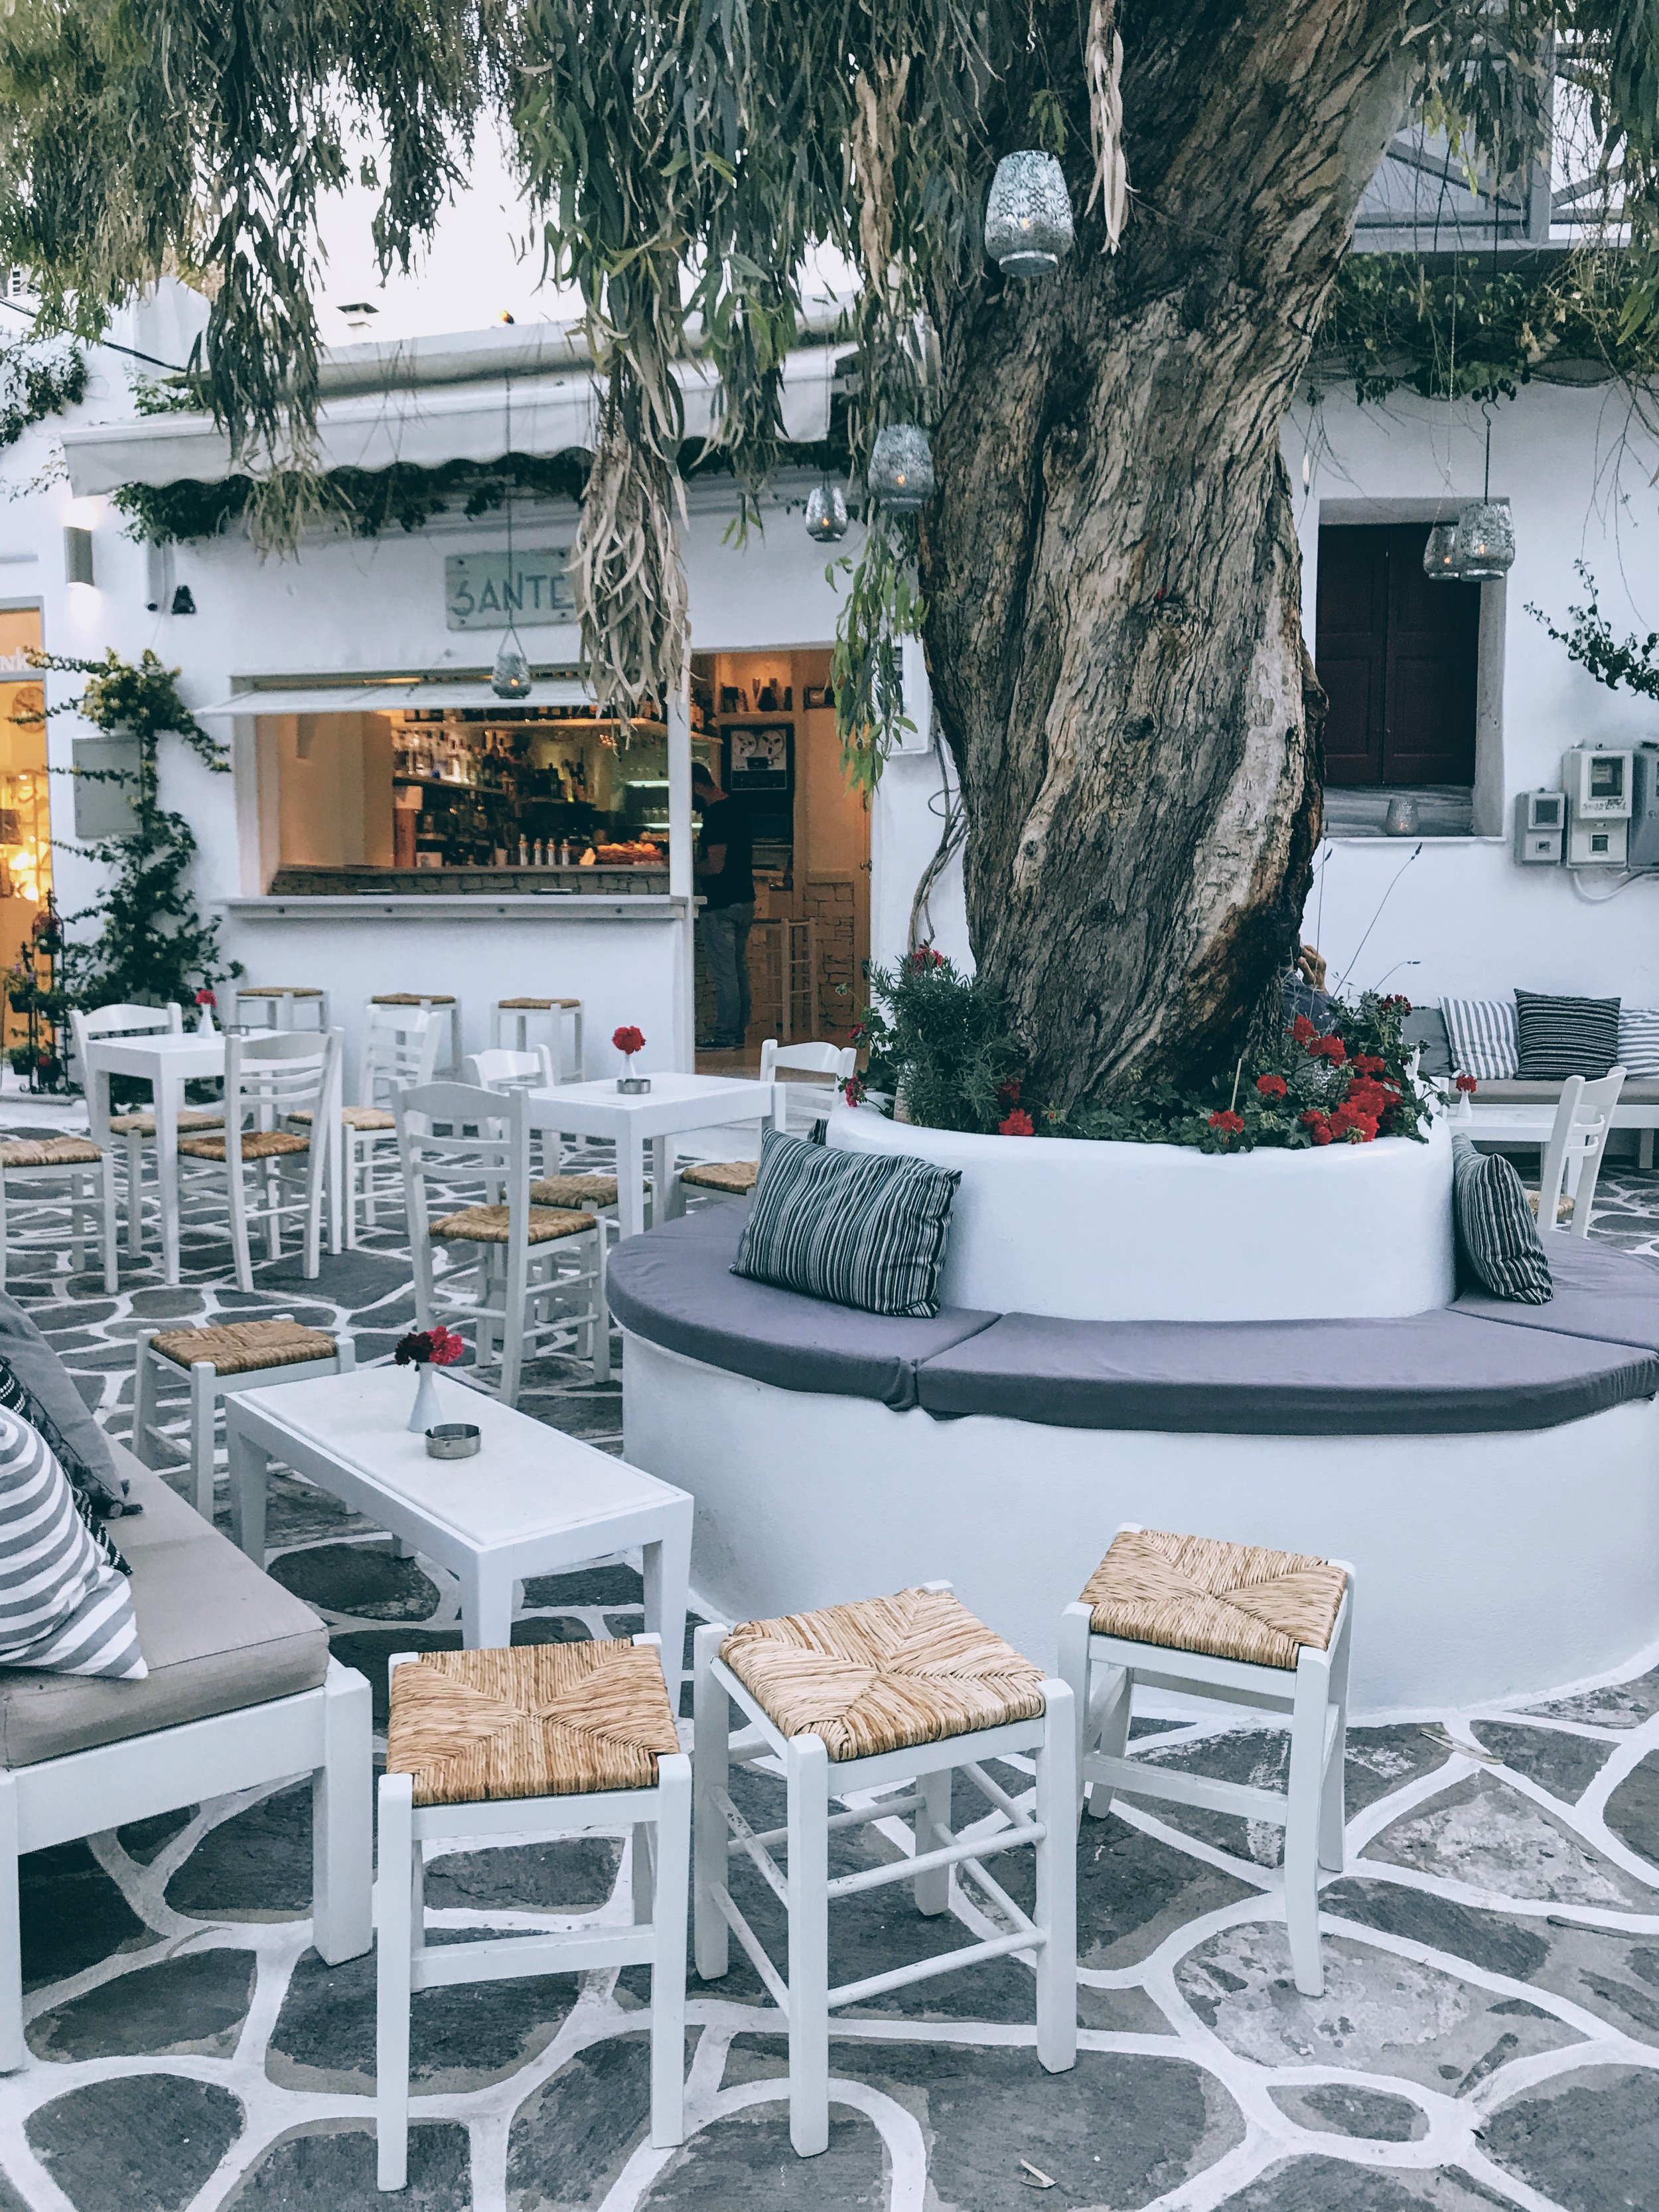 Chilled vibes and drinks at Sante café-bar in Naoussa